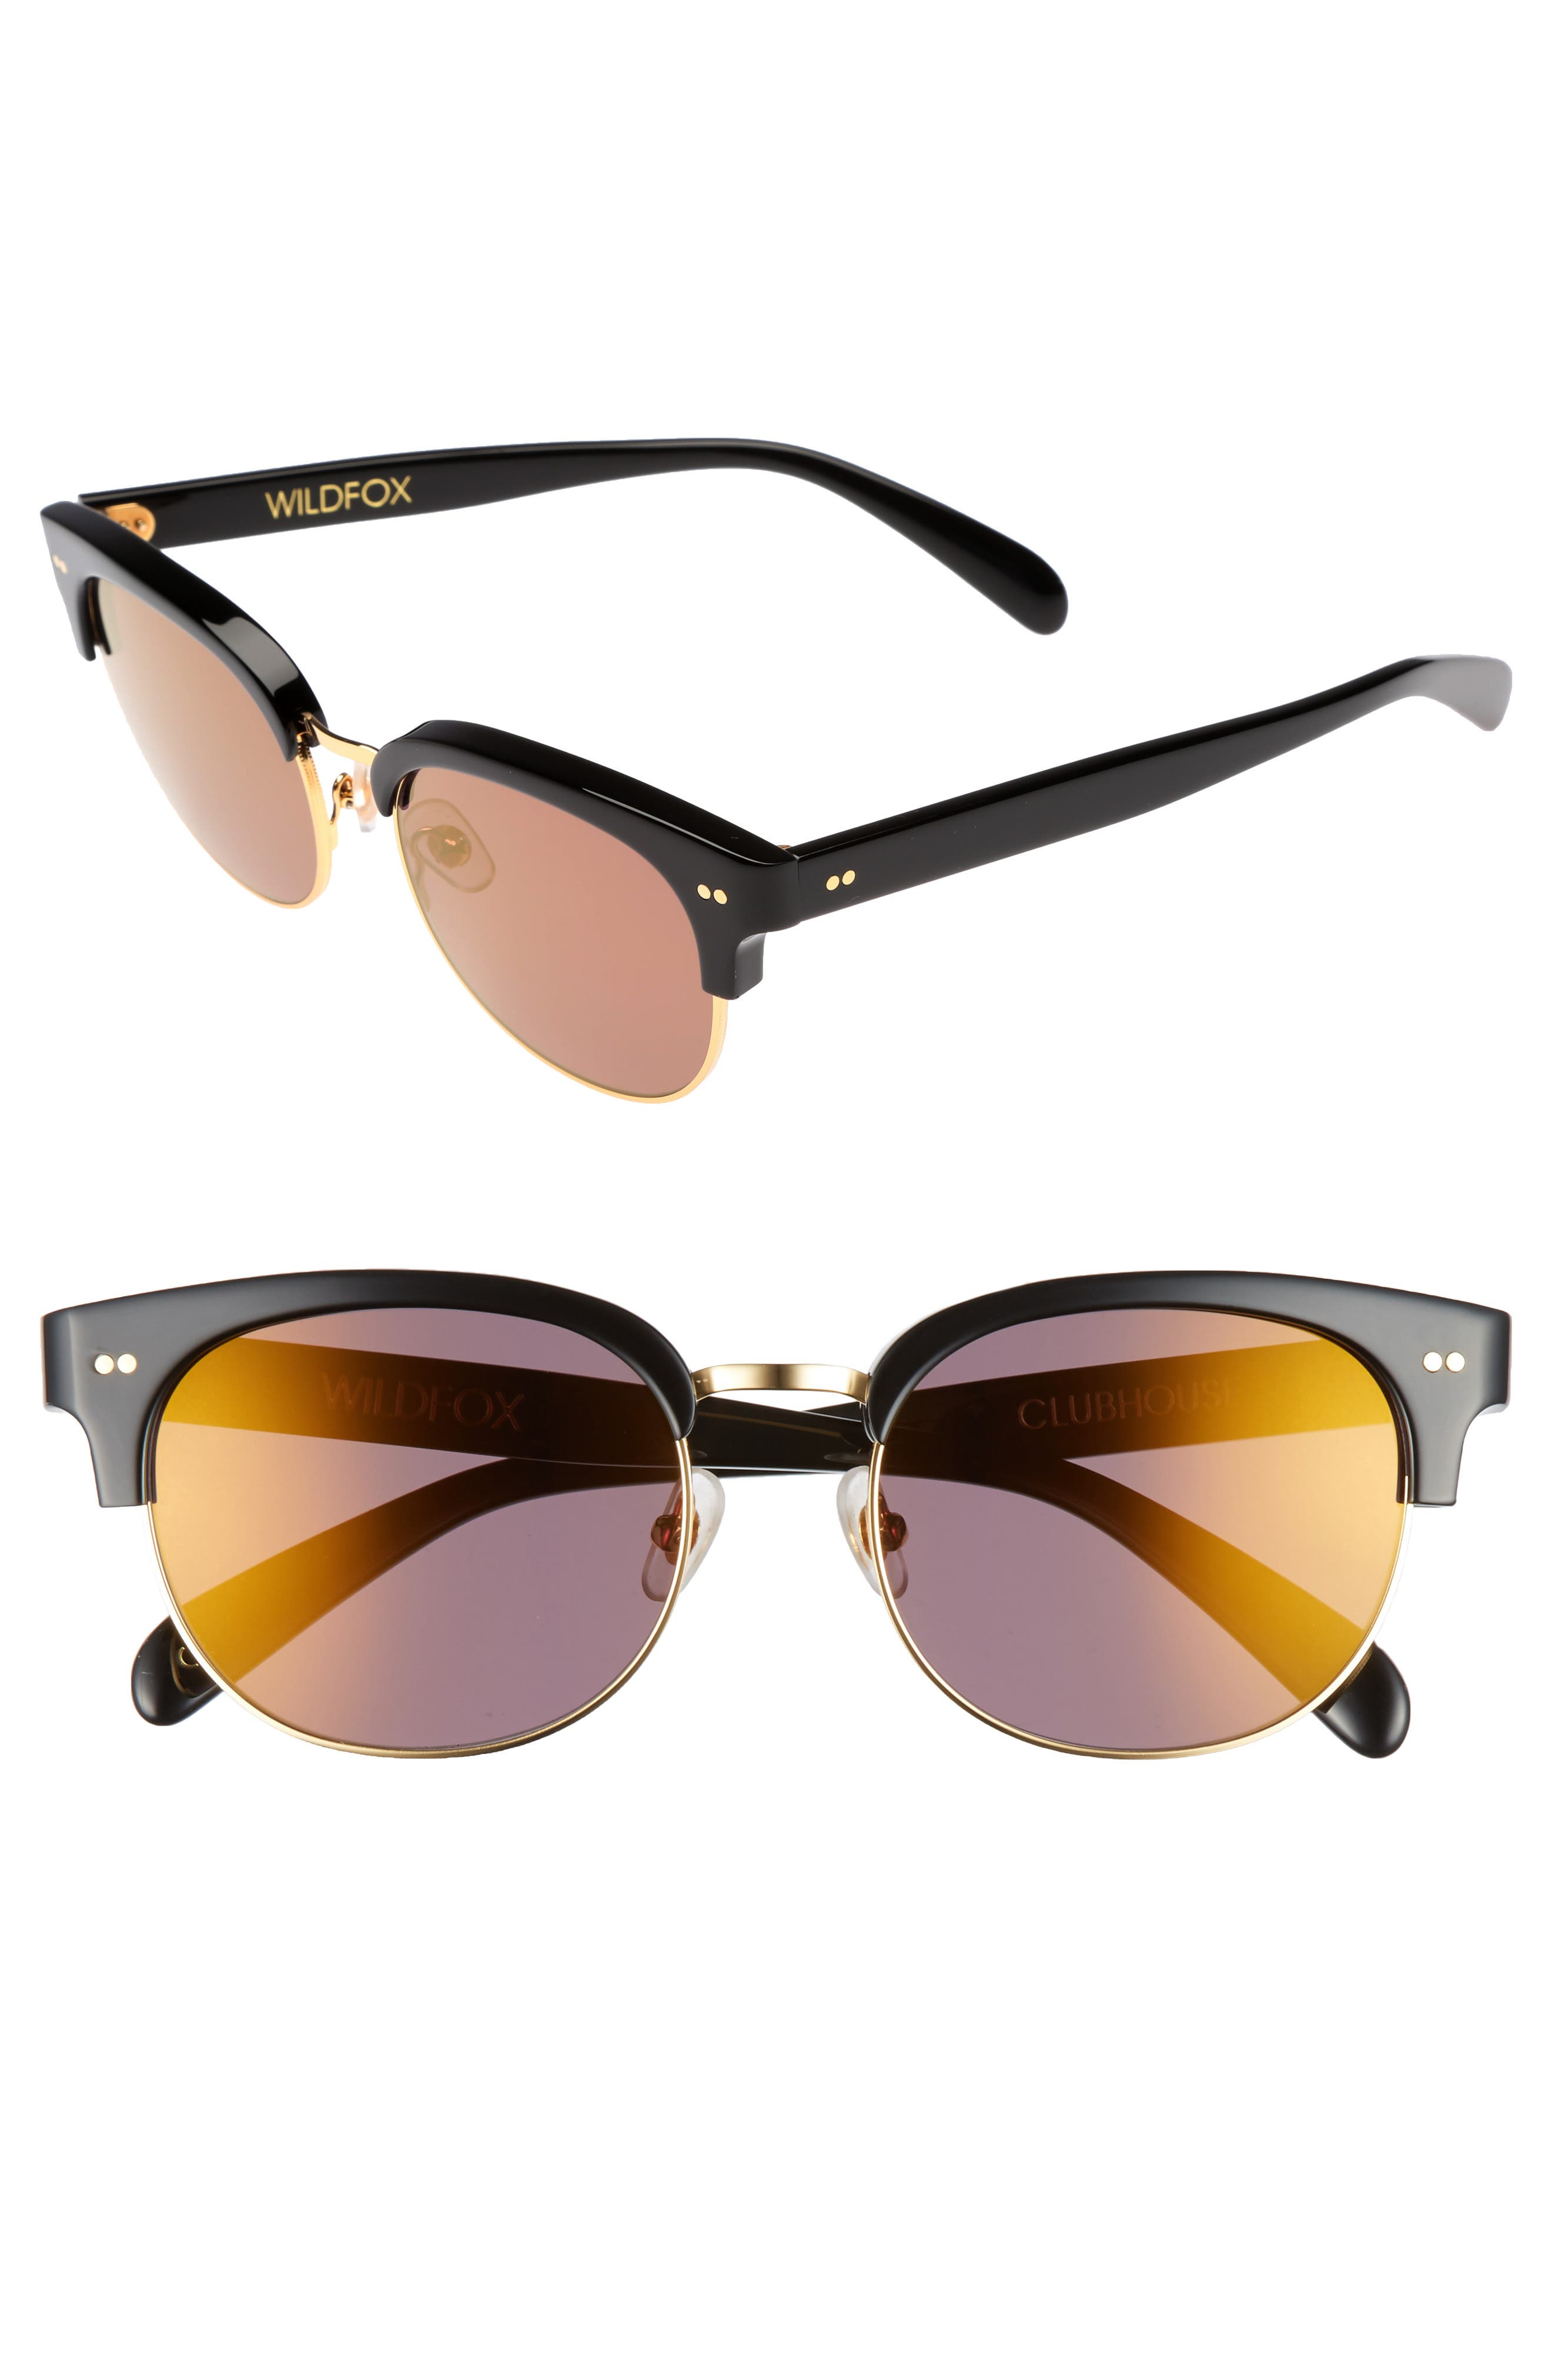 Clubhouse 50mm Semi-Rimless Sunglasses,                             Main thumbnail 1, color,                             BLACK/ GOLD